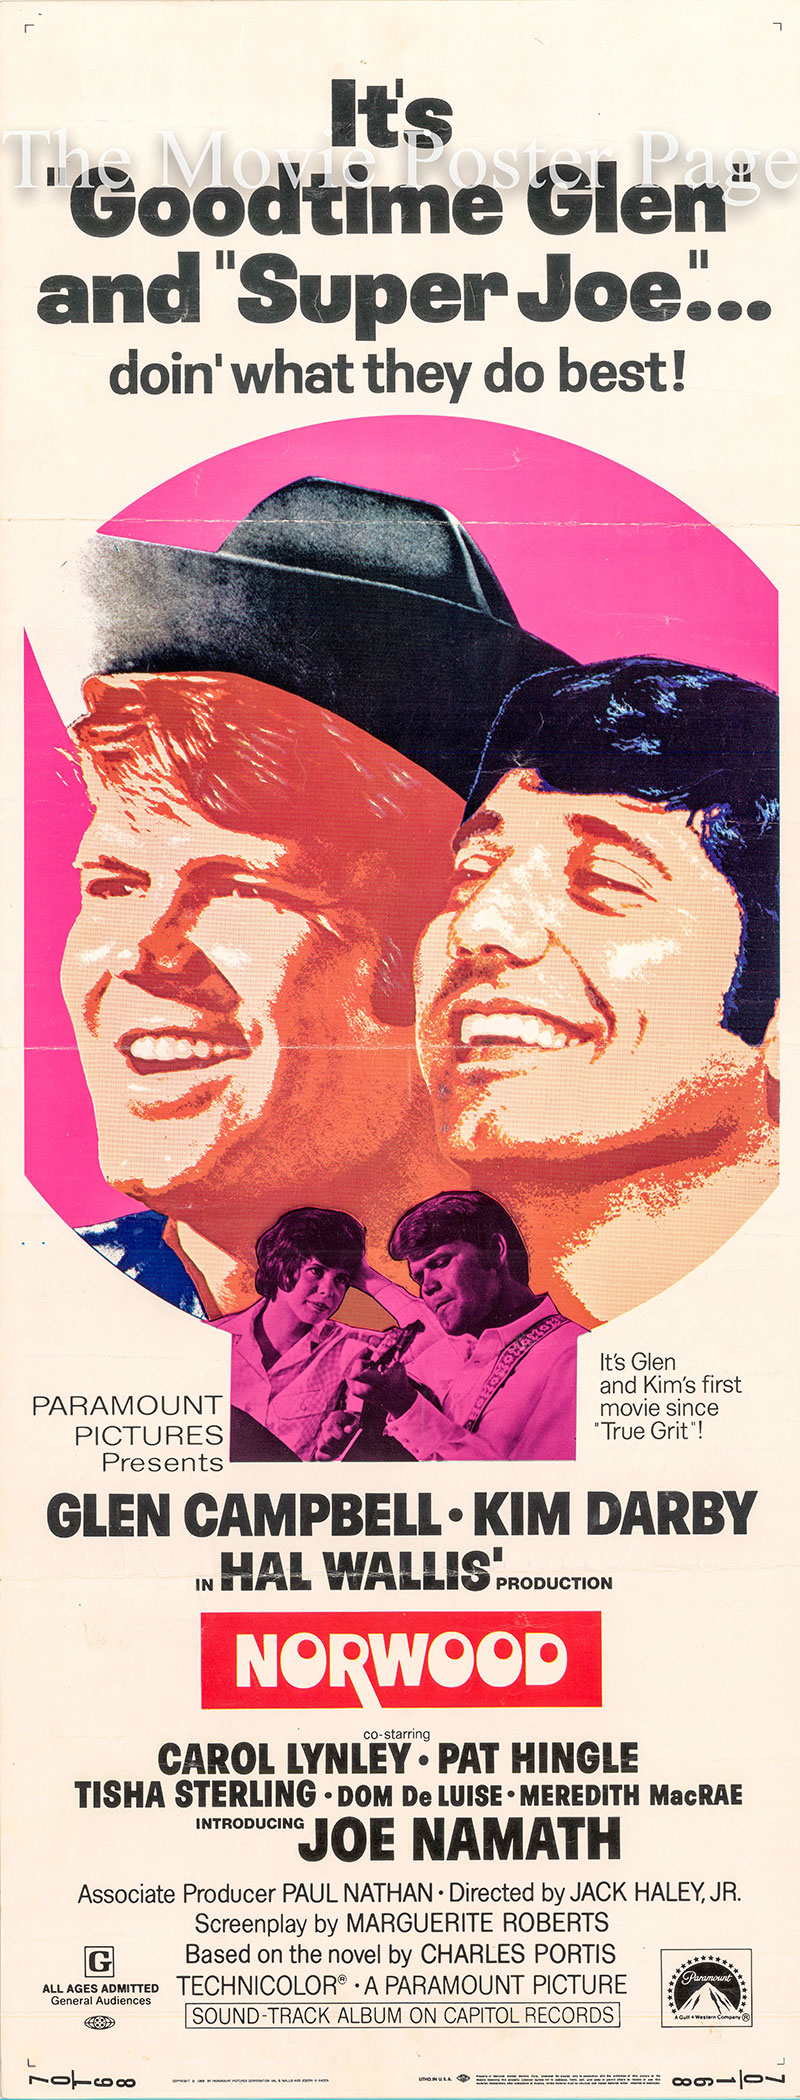 Pictured is a US insert poster for the 1970 Jack Haley Jr. film Norwood starring Glen Campbell.